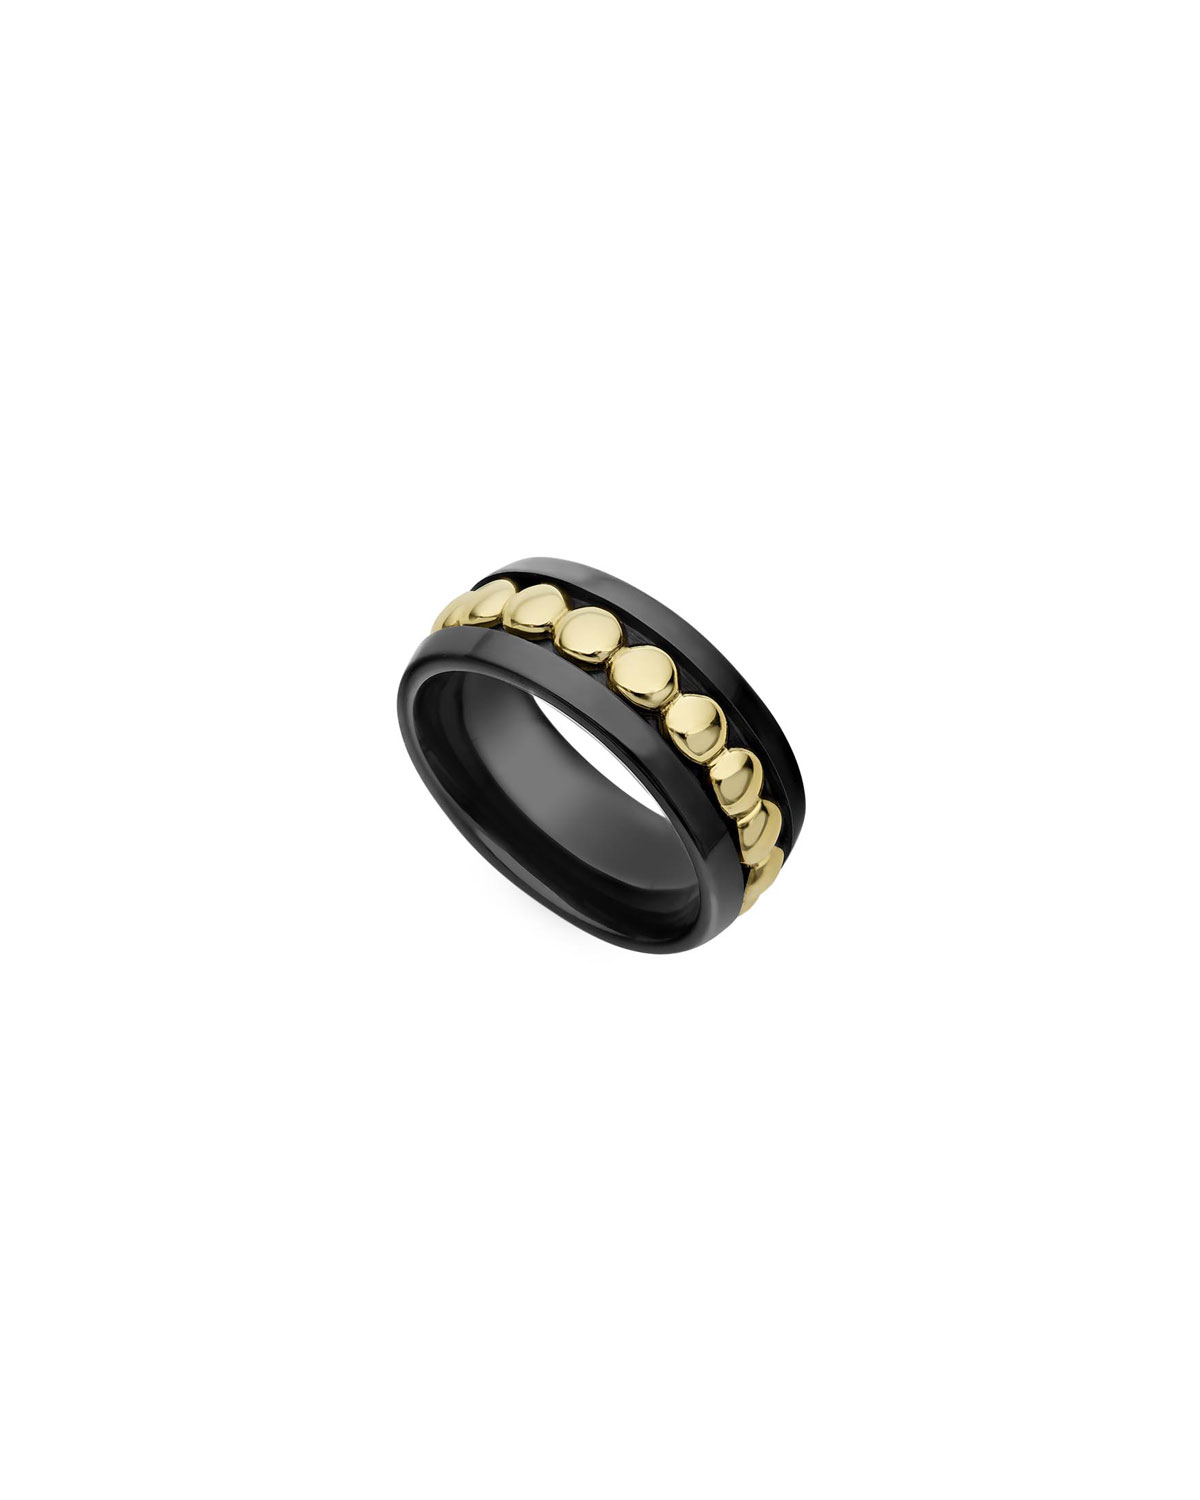 Lagos 18k Gold & Black Caviar 8mm Ring, Size 7